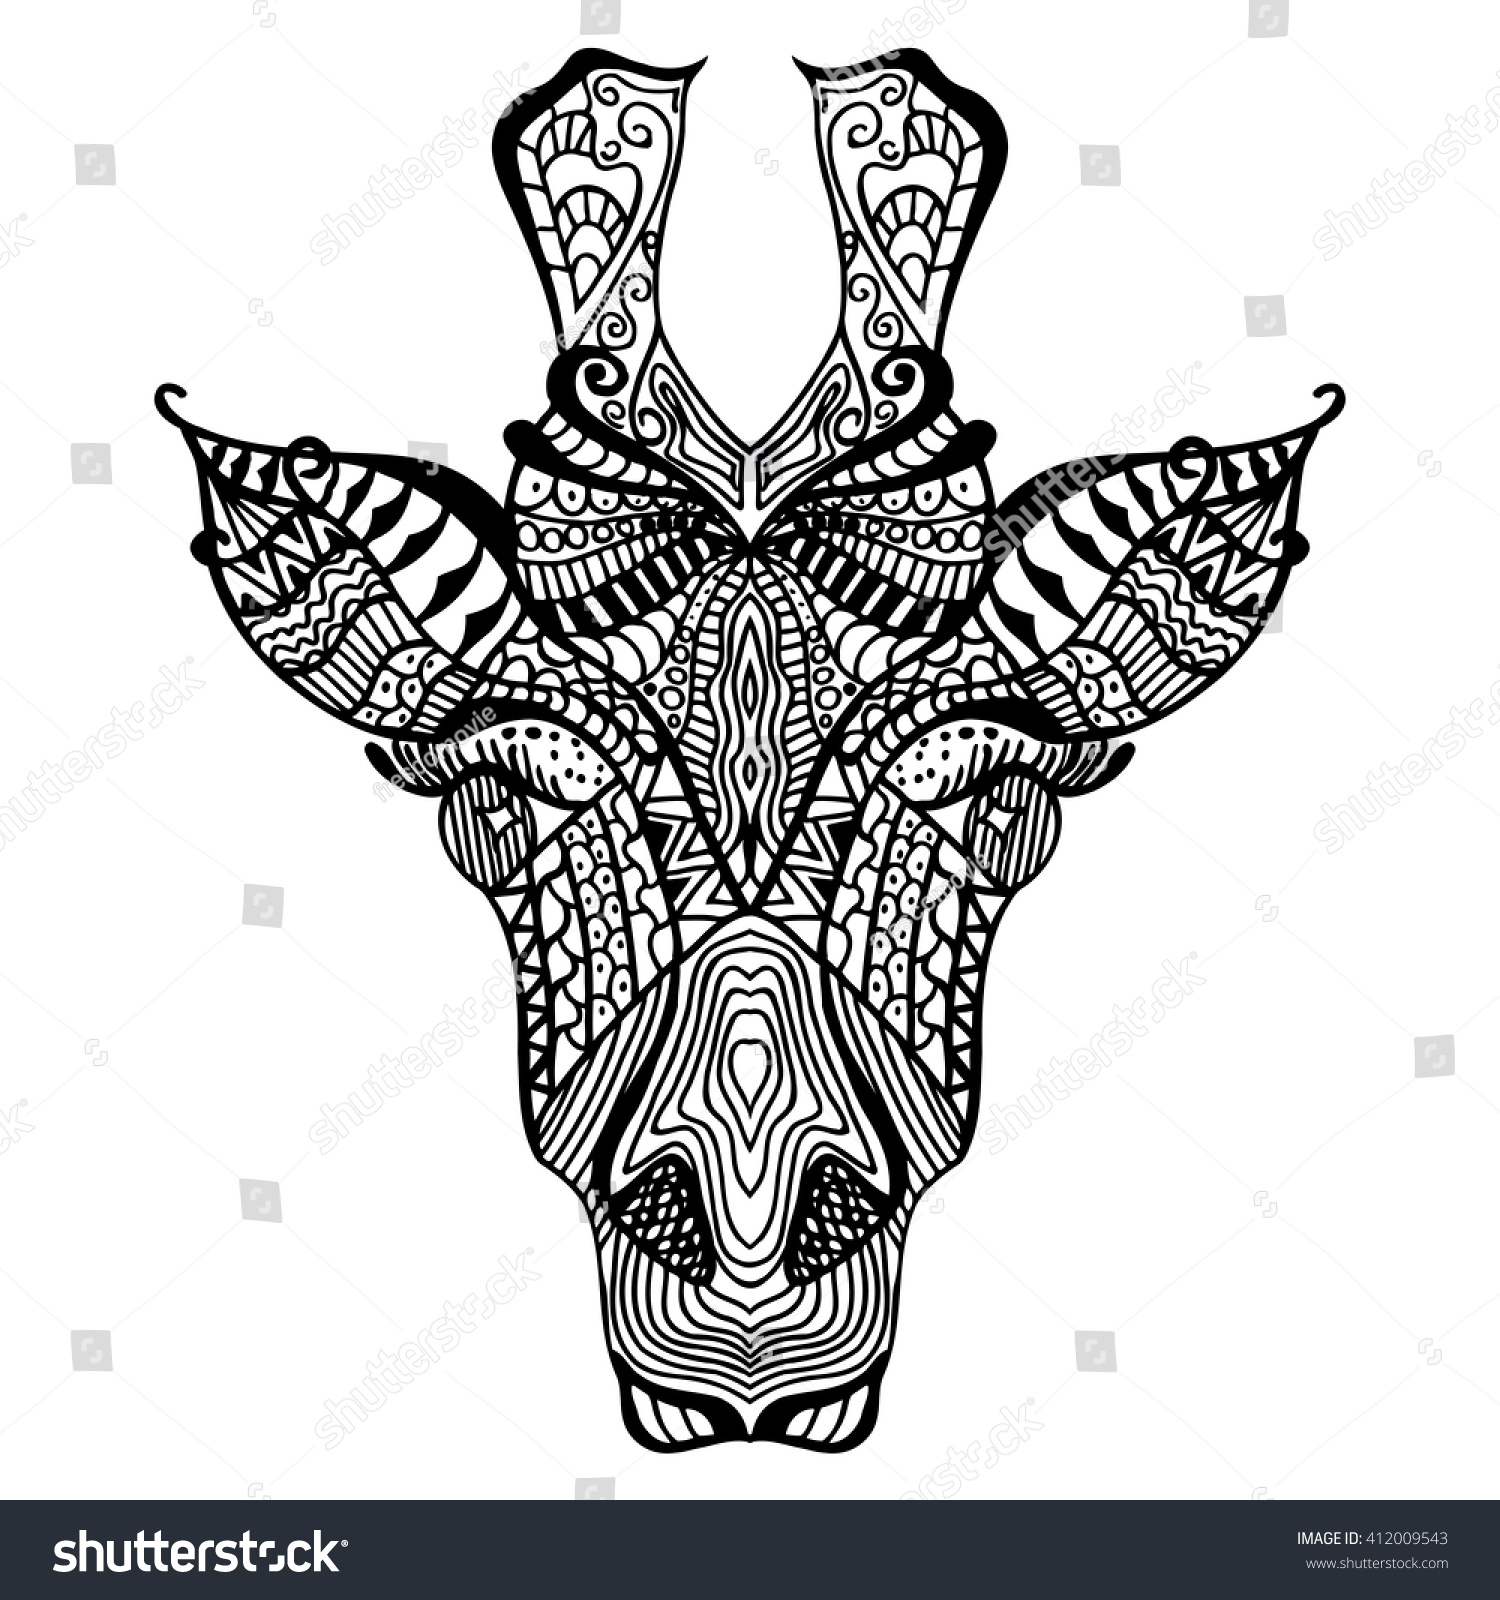 giraffe hand drawn giraffe ethnic floral stock vector 412009543